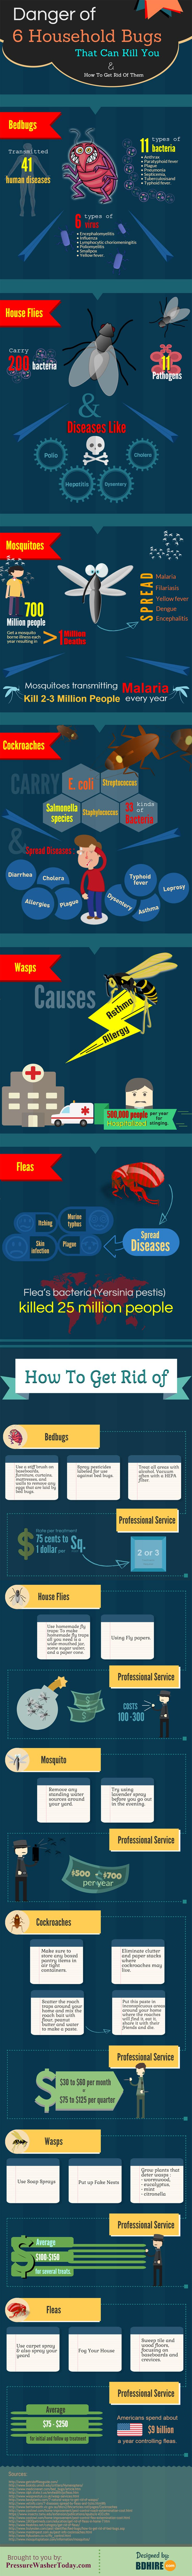 We all know that we must keep our home free of household bugs. But, what do we know about them? How serious threat are they on our health and safety? What are the things that needs to be done to eradicate them fully? Find out on the infographic below…